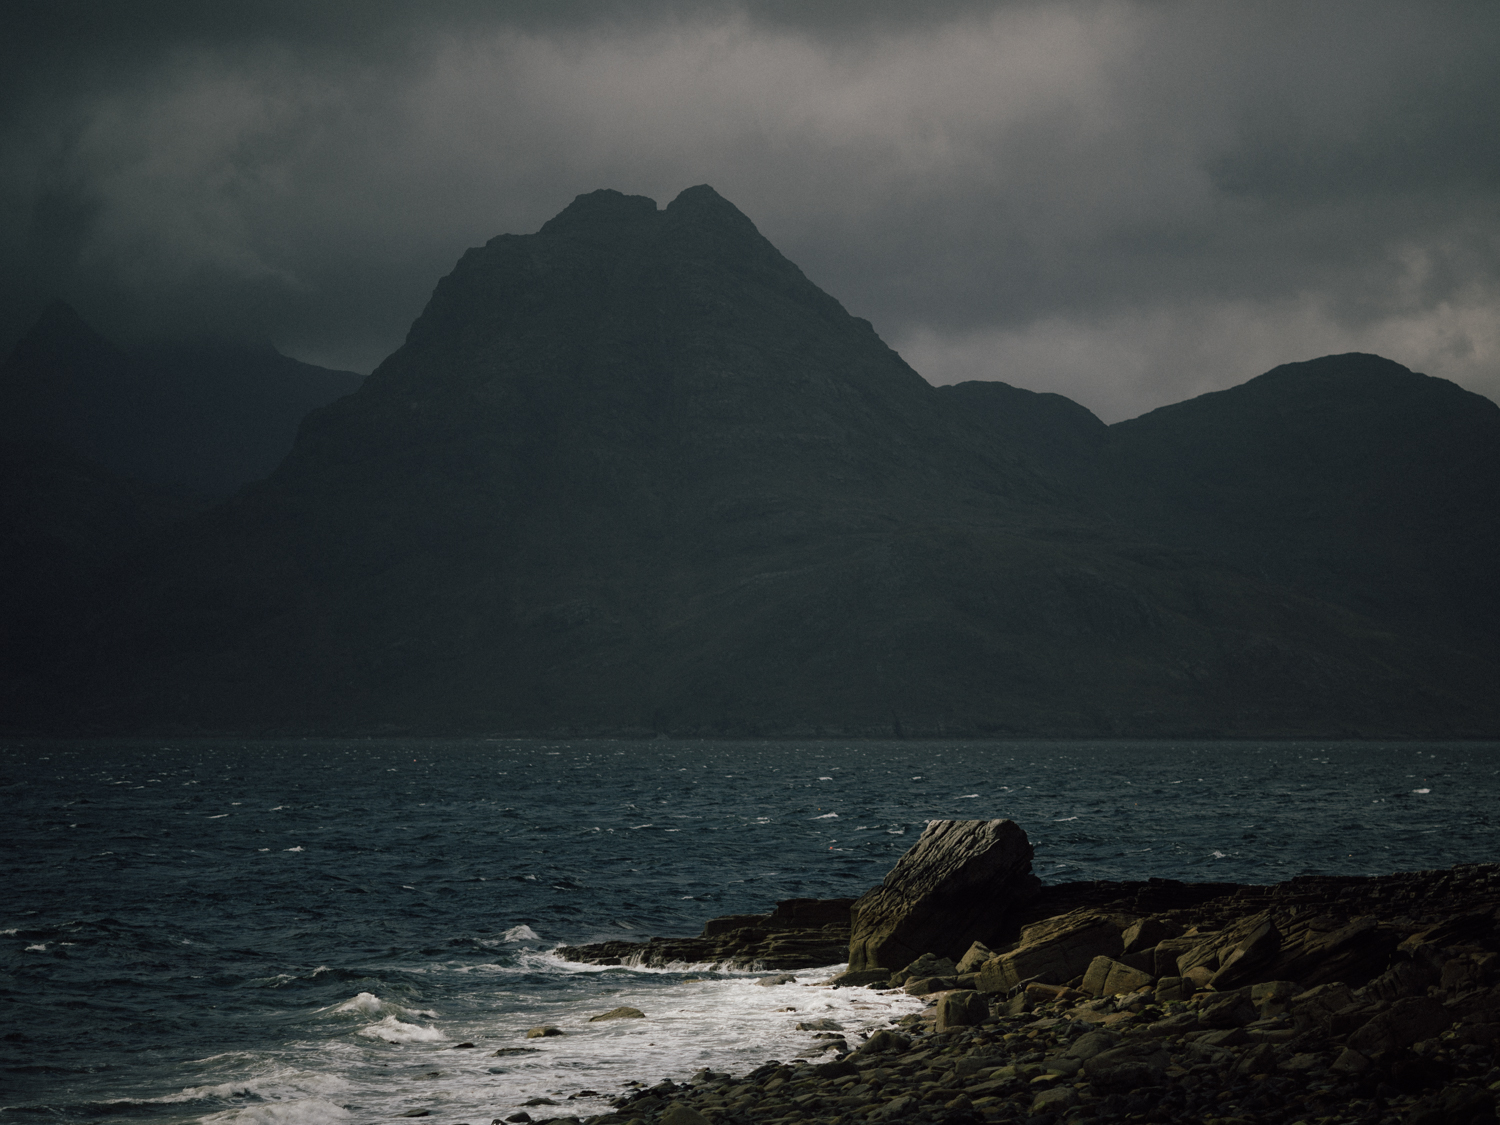 capyture-wedding-photographer-destination-elopement-isle-skye-scotland-25